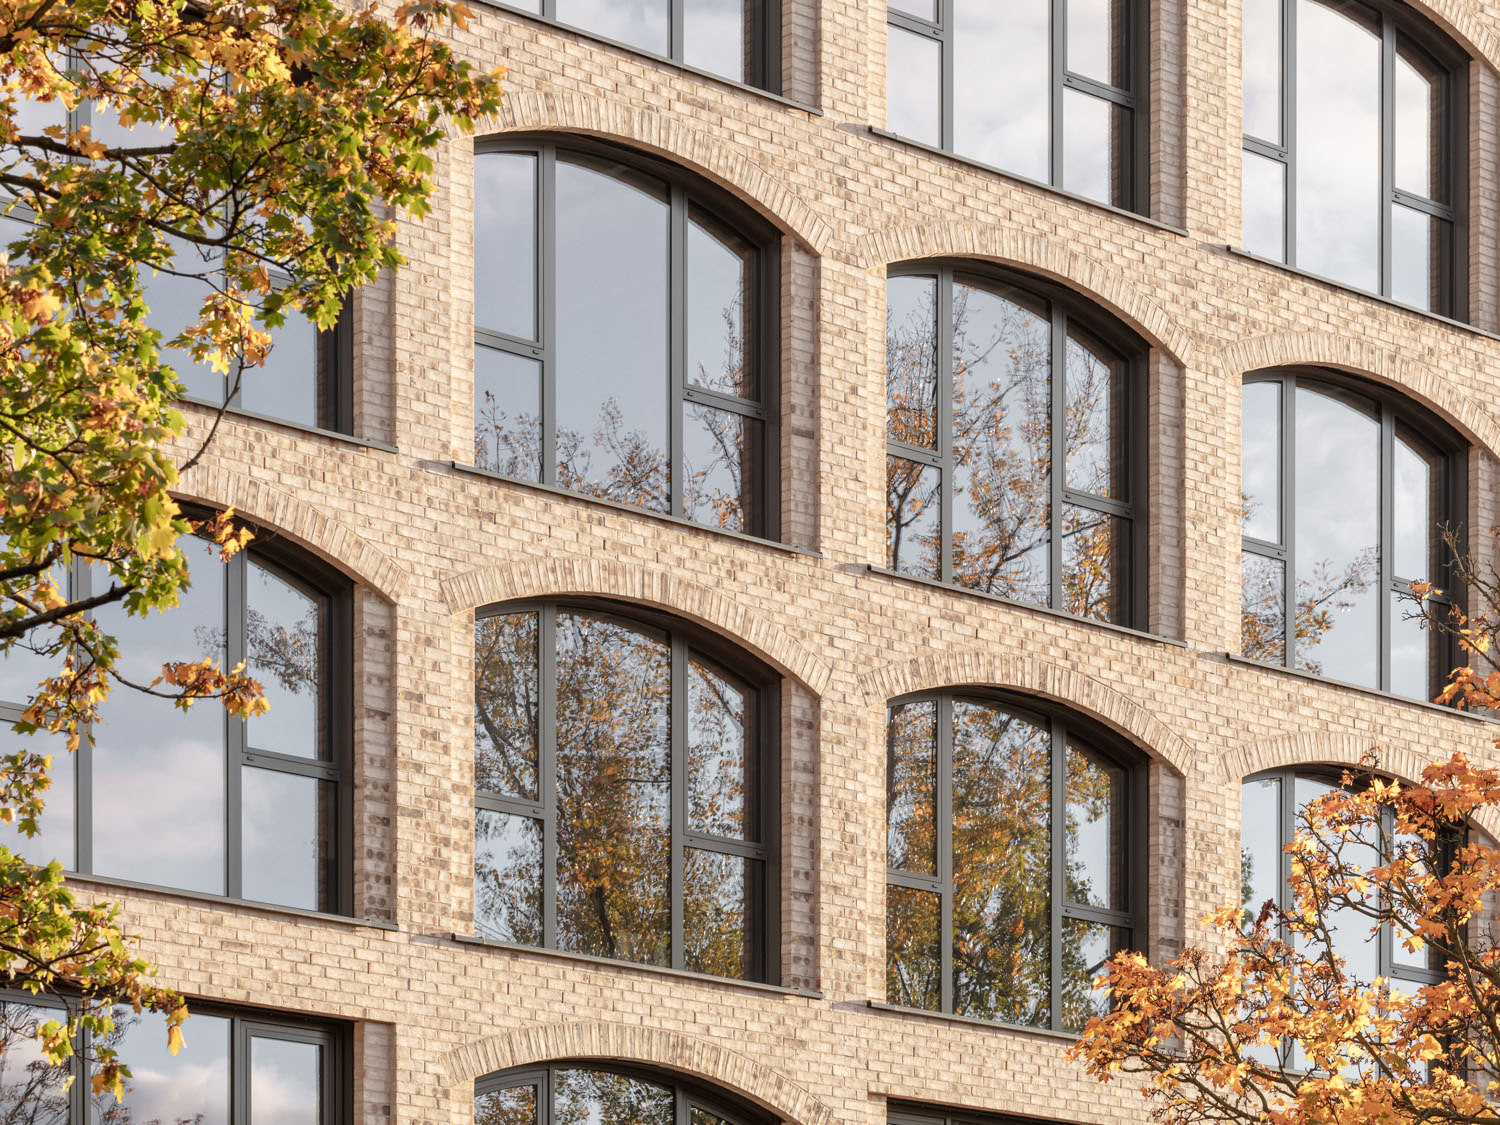 Four-storey central area with glazed, large-format windows in segmental arches as a reference to early industrial modernism. Klemens Renner